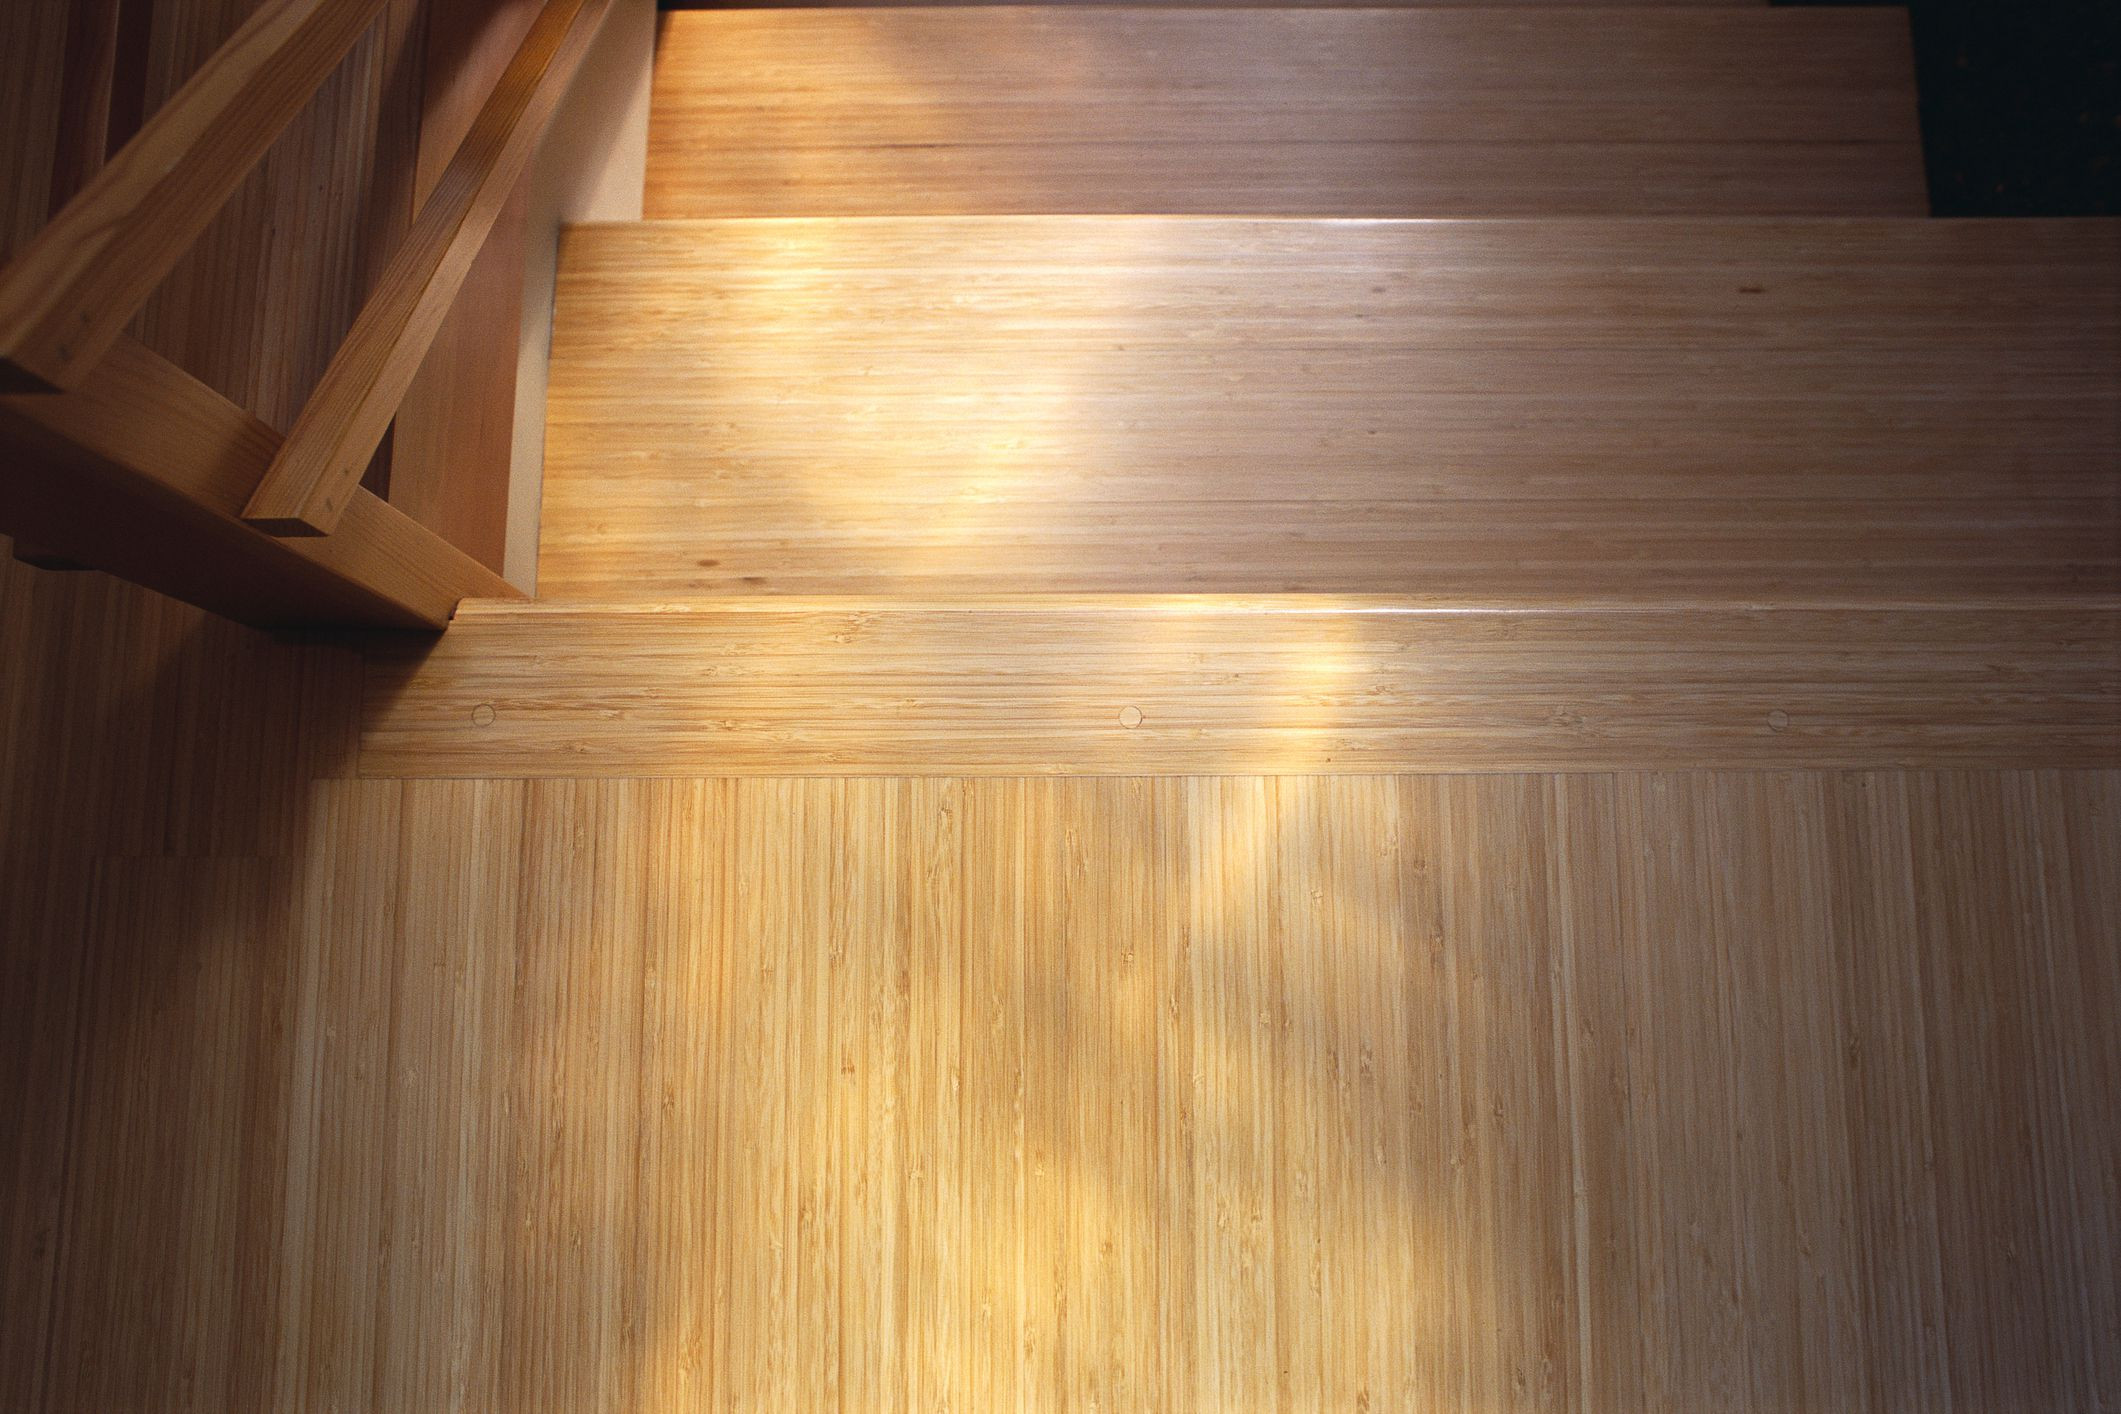 hardwood floor suppliers denver of bamboo flooring issues and problems throughout gettyimages 588174422 59ffa192e258f800370dd247